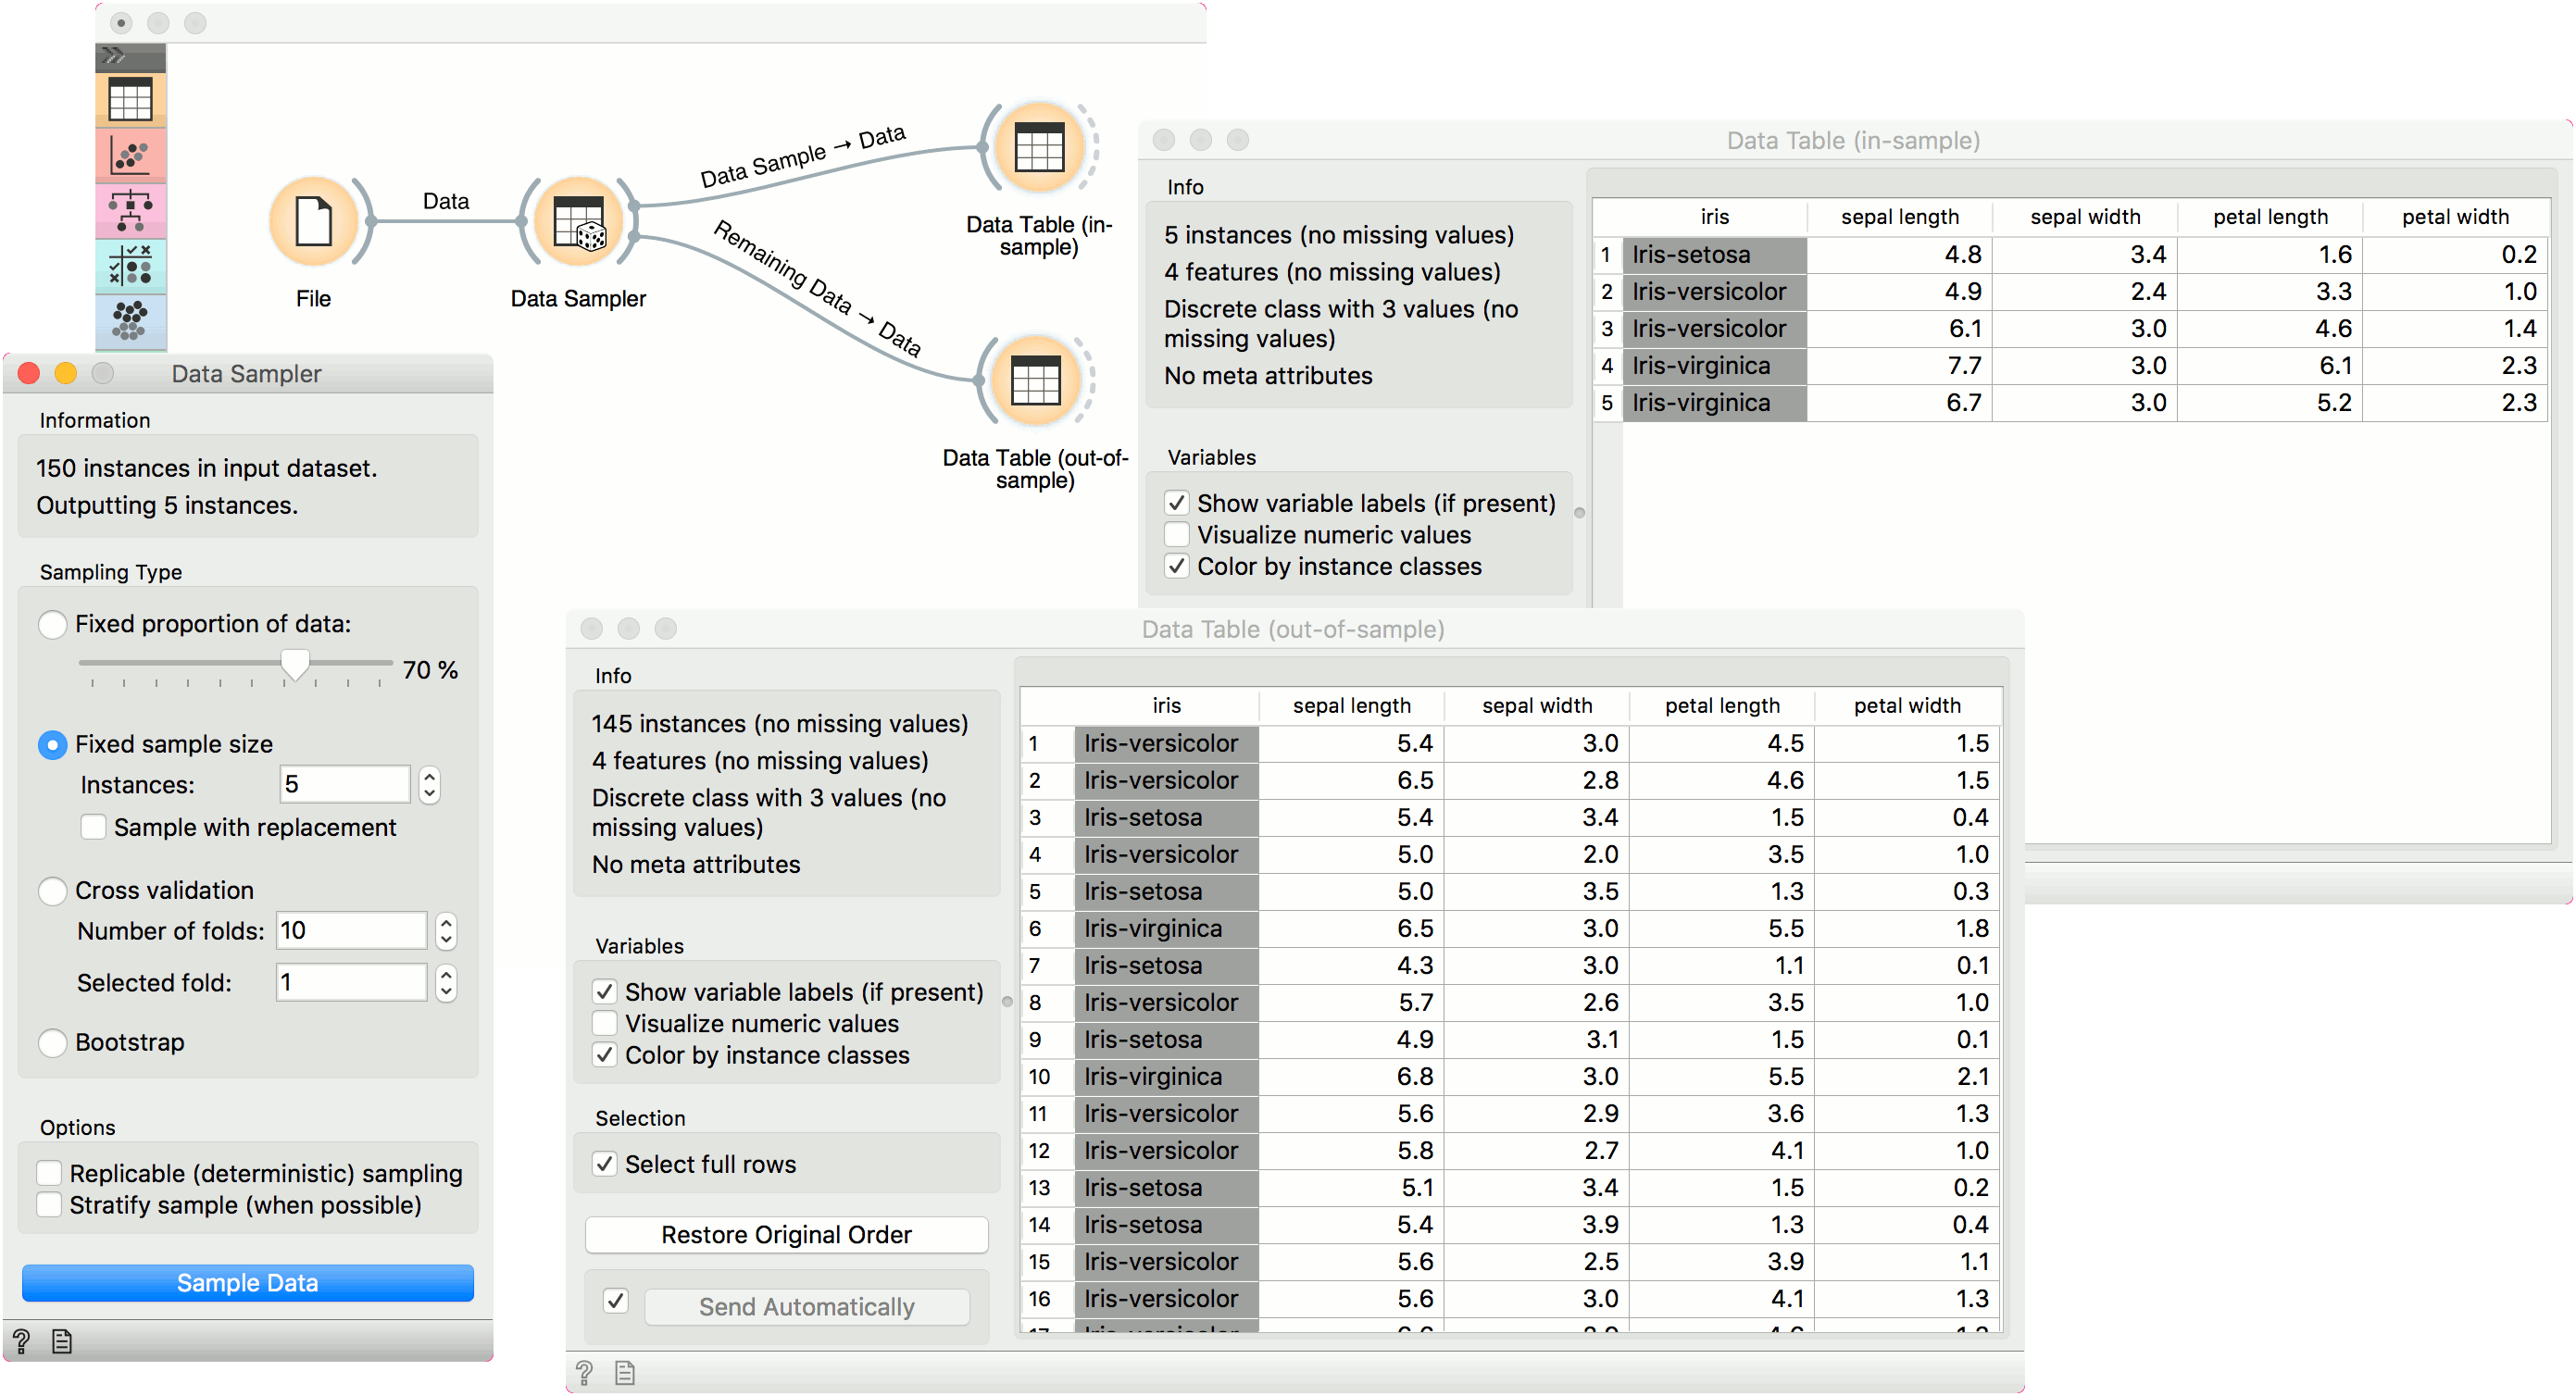 Data Sampler — Orange Visual Programming 3 documentation